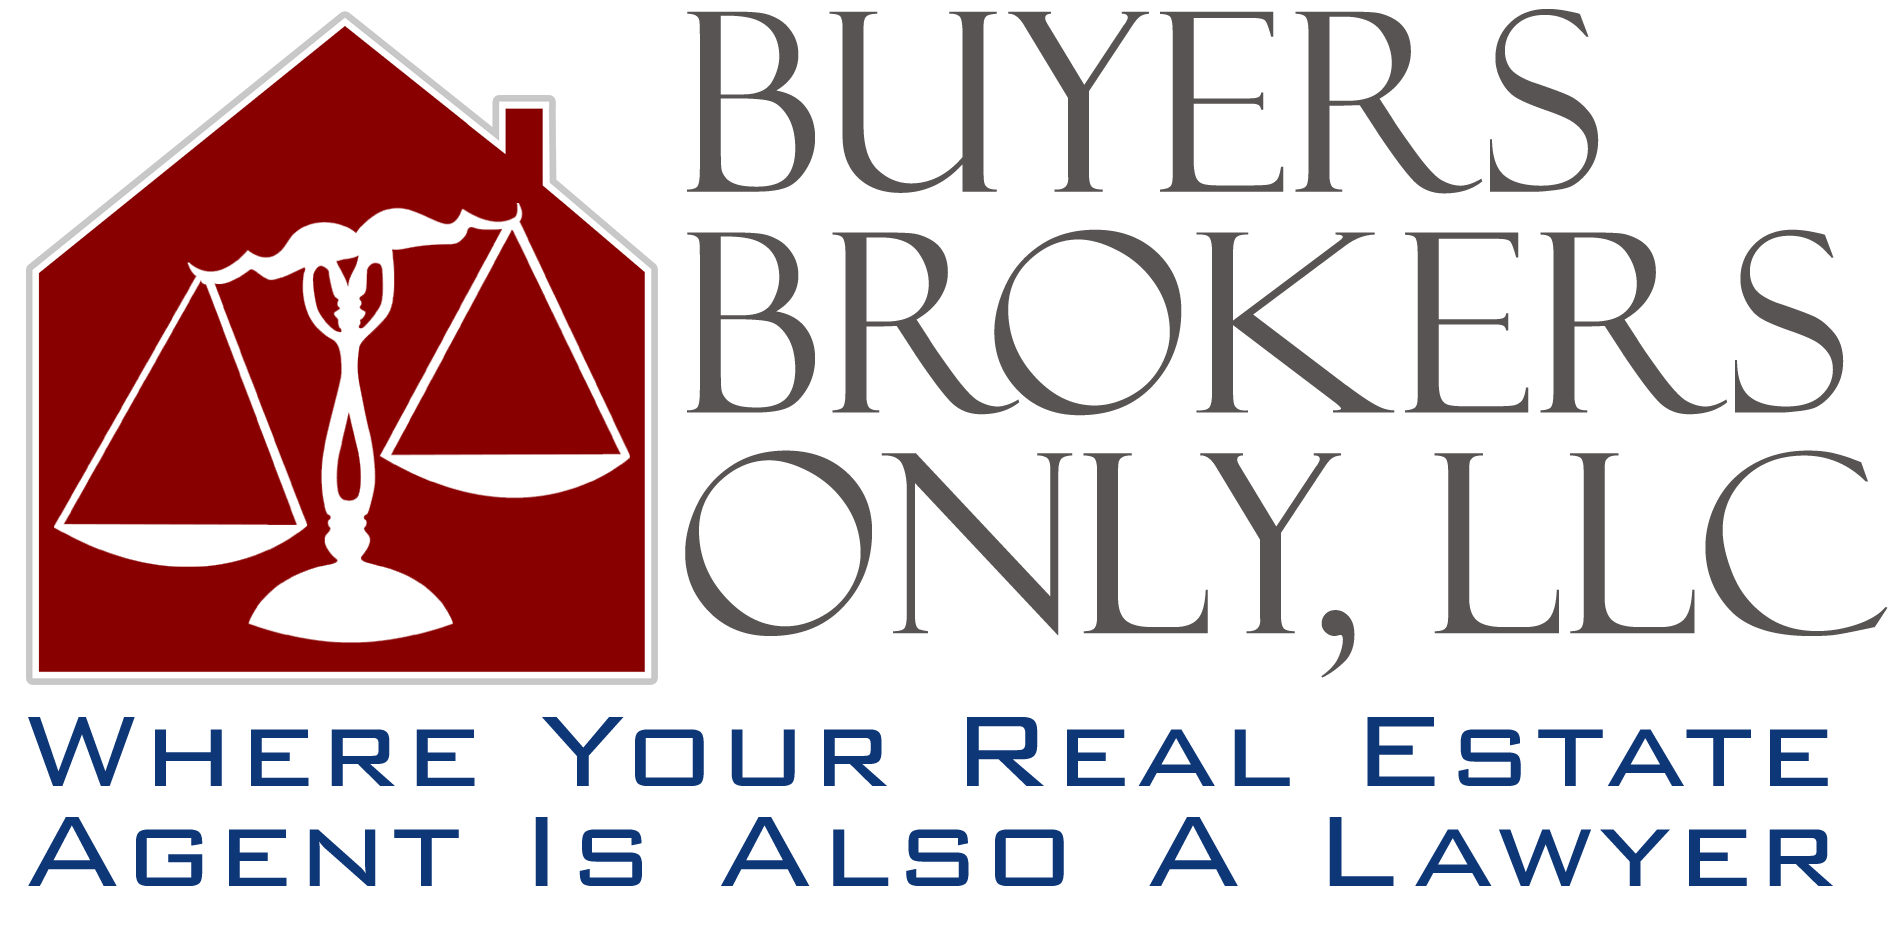 Buyers Brokers Only, LLC - Exclusive Buyer Brokers